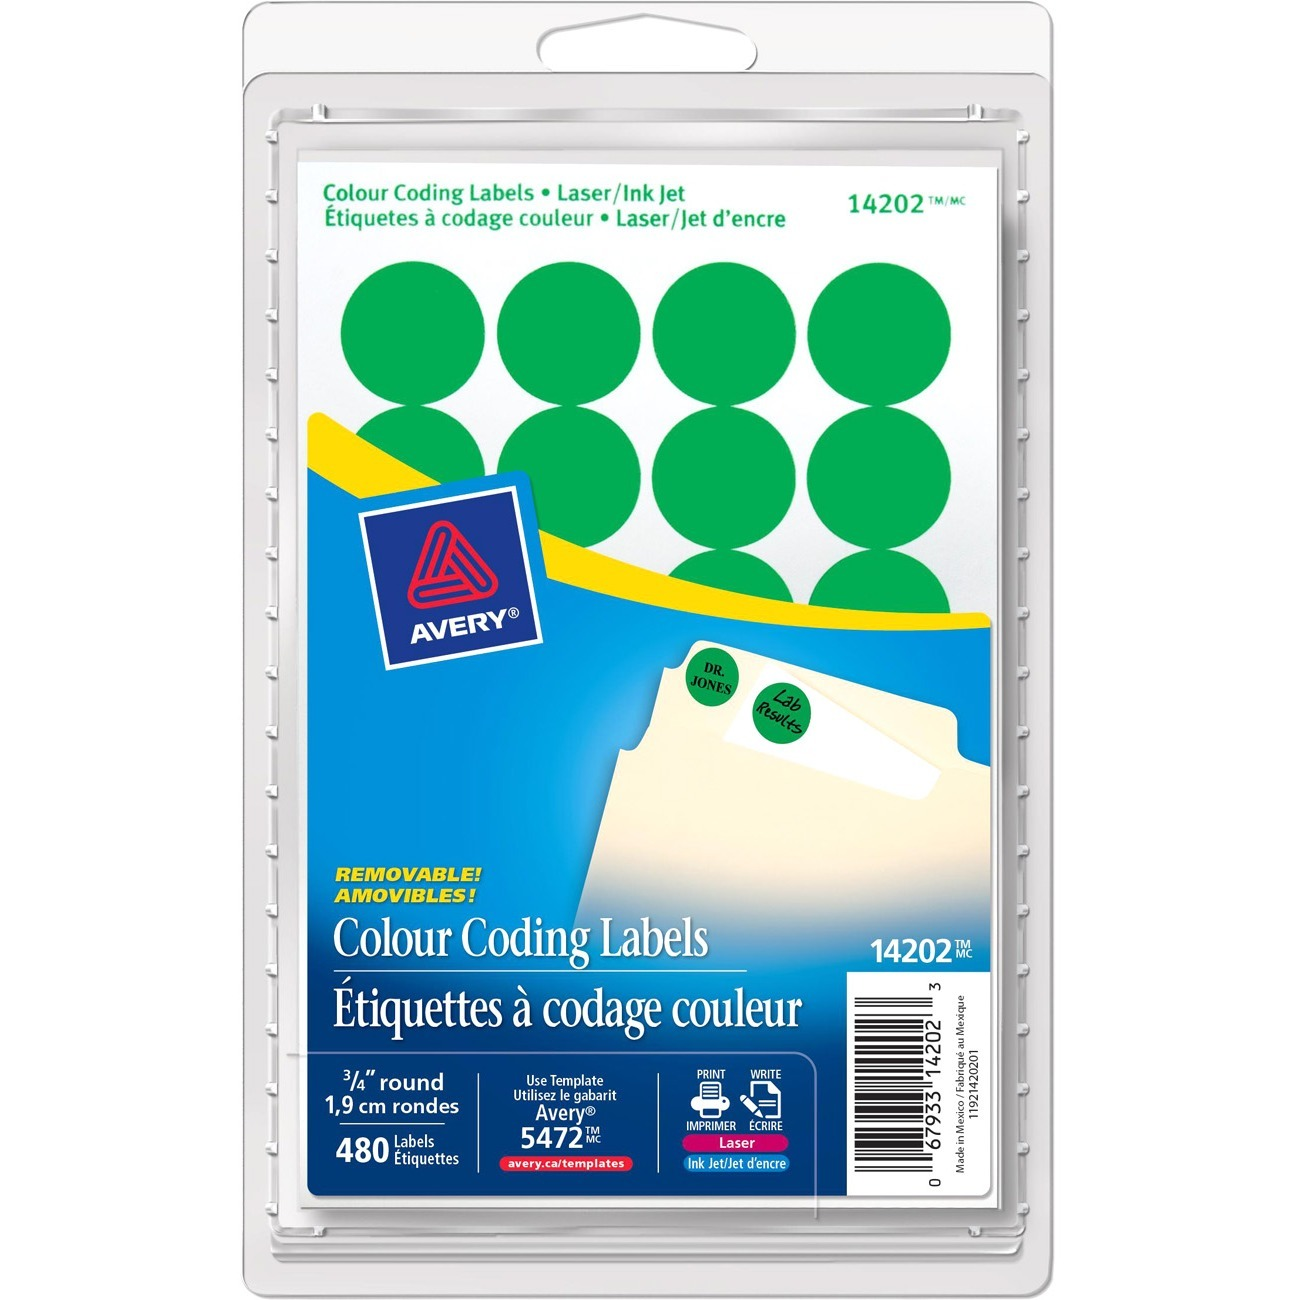 Color Coding Labels Offer A Fast Easy Way To Keep Track Of Your Files Inventory Scheduling Doentore Removable Self Adhesive Ls Away